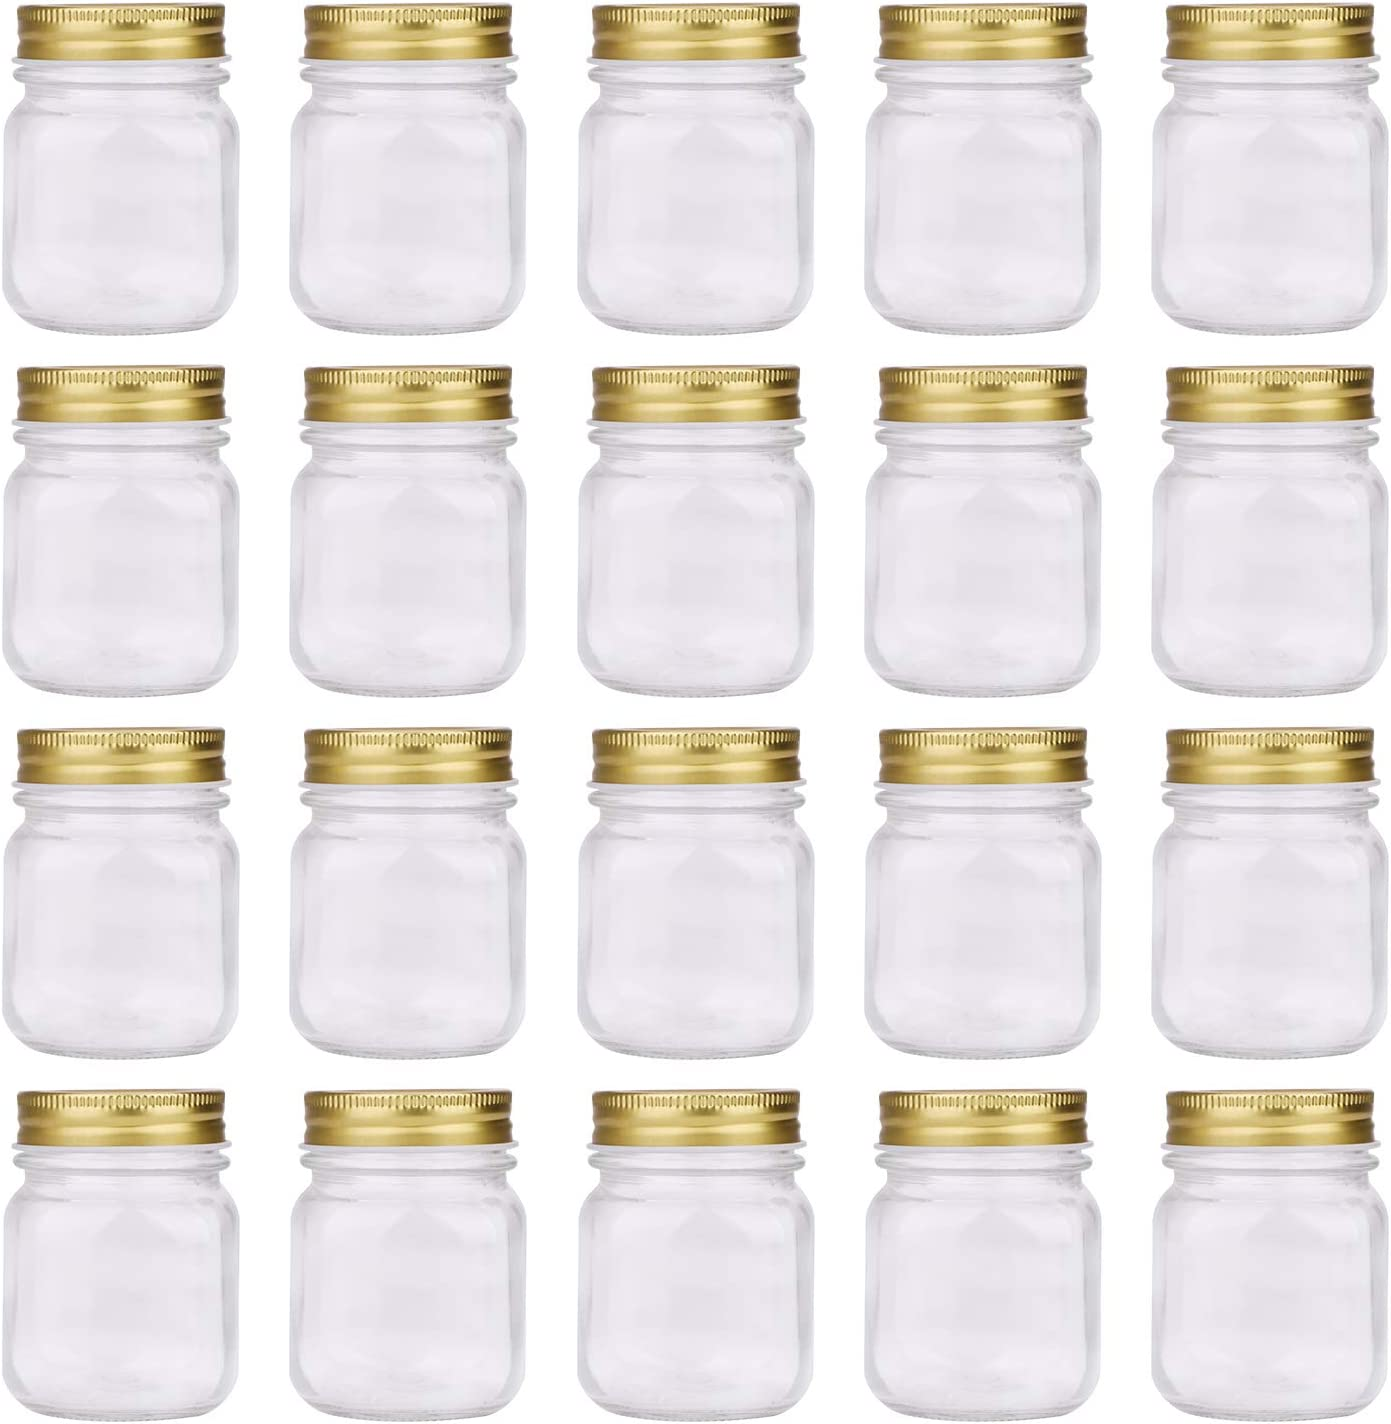 Regular Mouth Mason Jars,Encheng 5oz Clear Glass Jars with Lids(Gold),Small Spice Jars for Herb,Jelly,Jams,Wedding Favors,Shower Favors,Baby Foods,Mini Canning Jars Kitchen Storage Jars 20Pack … …